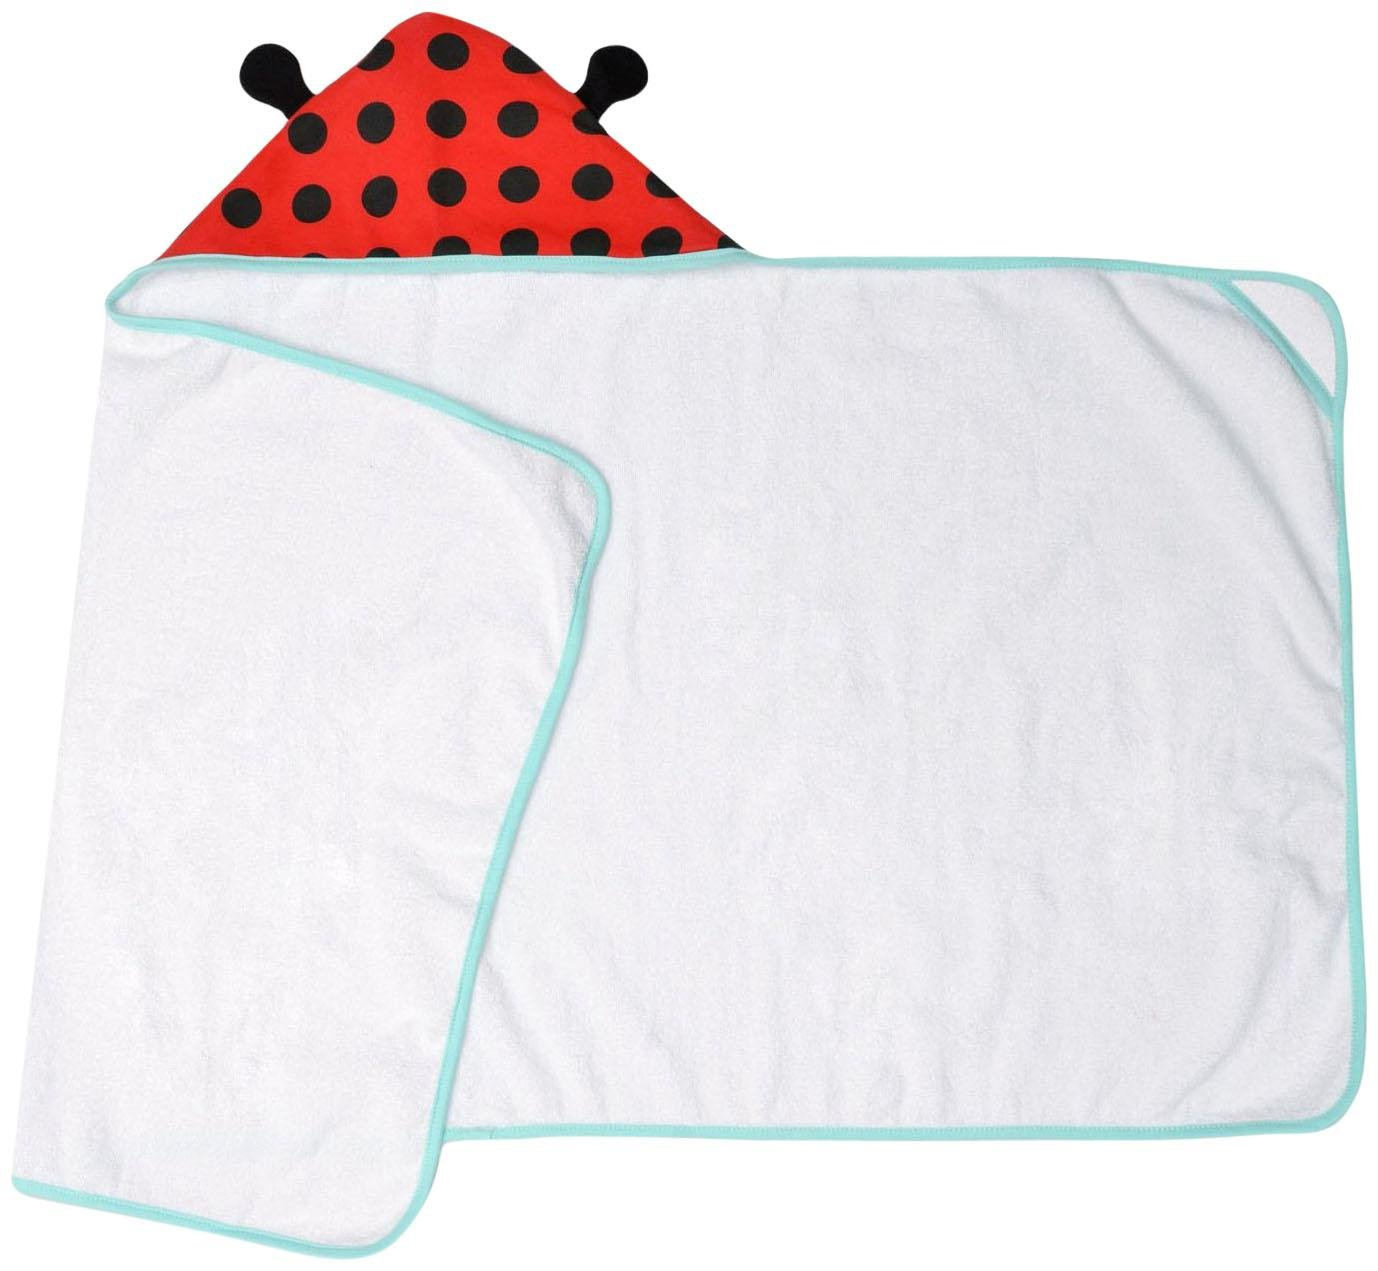 JJ Cole Hooded Towel - Lady Bug - 1 ct.